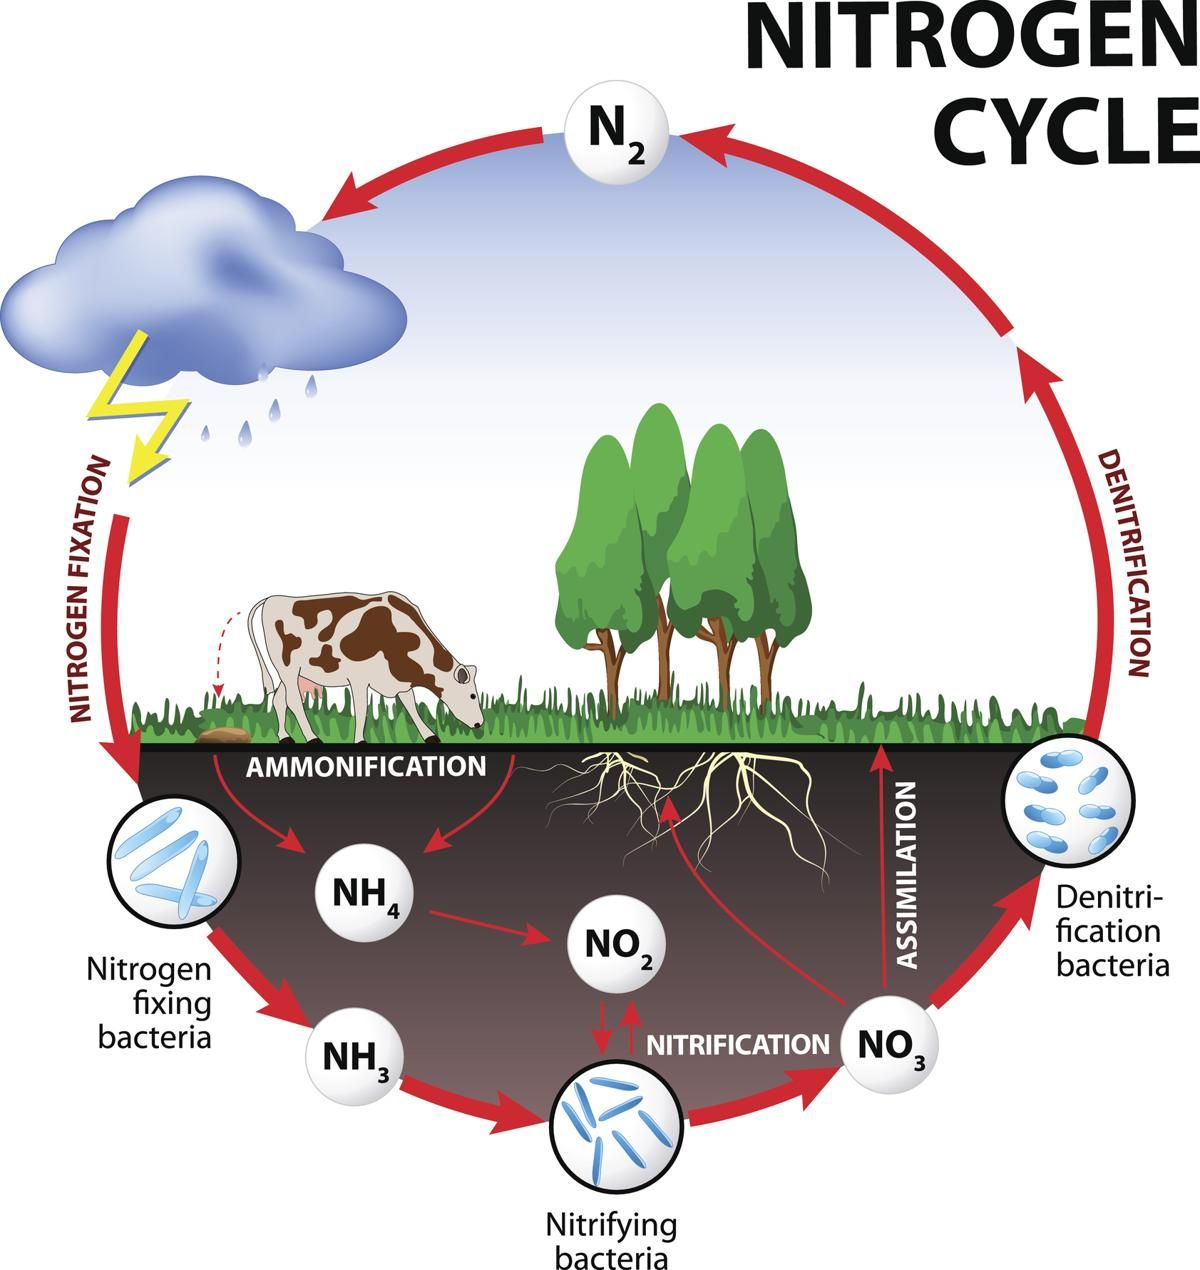 Steps Of Nitrogen Cycle There Are 5 Steps Of Nitrogen Cycle That Help In Fixing Atmospheric Nitrogen Nitrogen Fixati Nitrogen Cycle Cycle Drawing Carbon Cycle